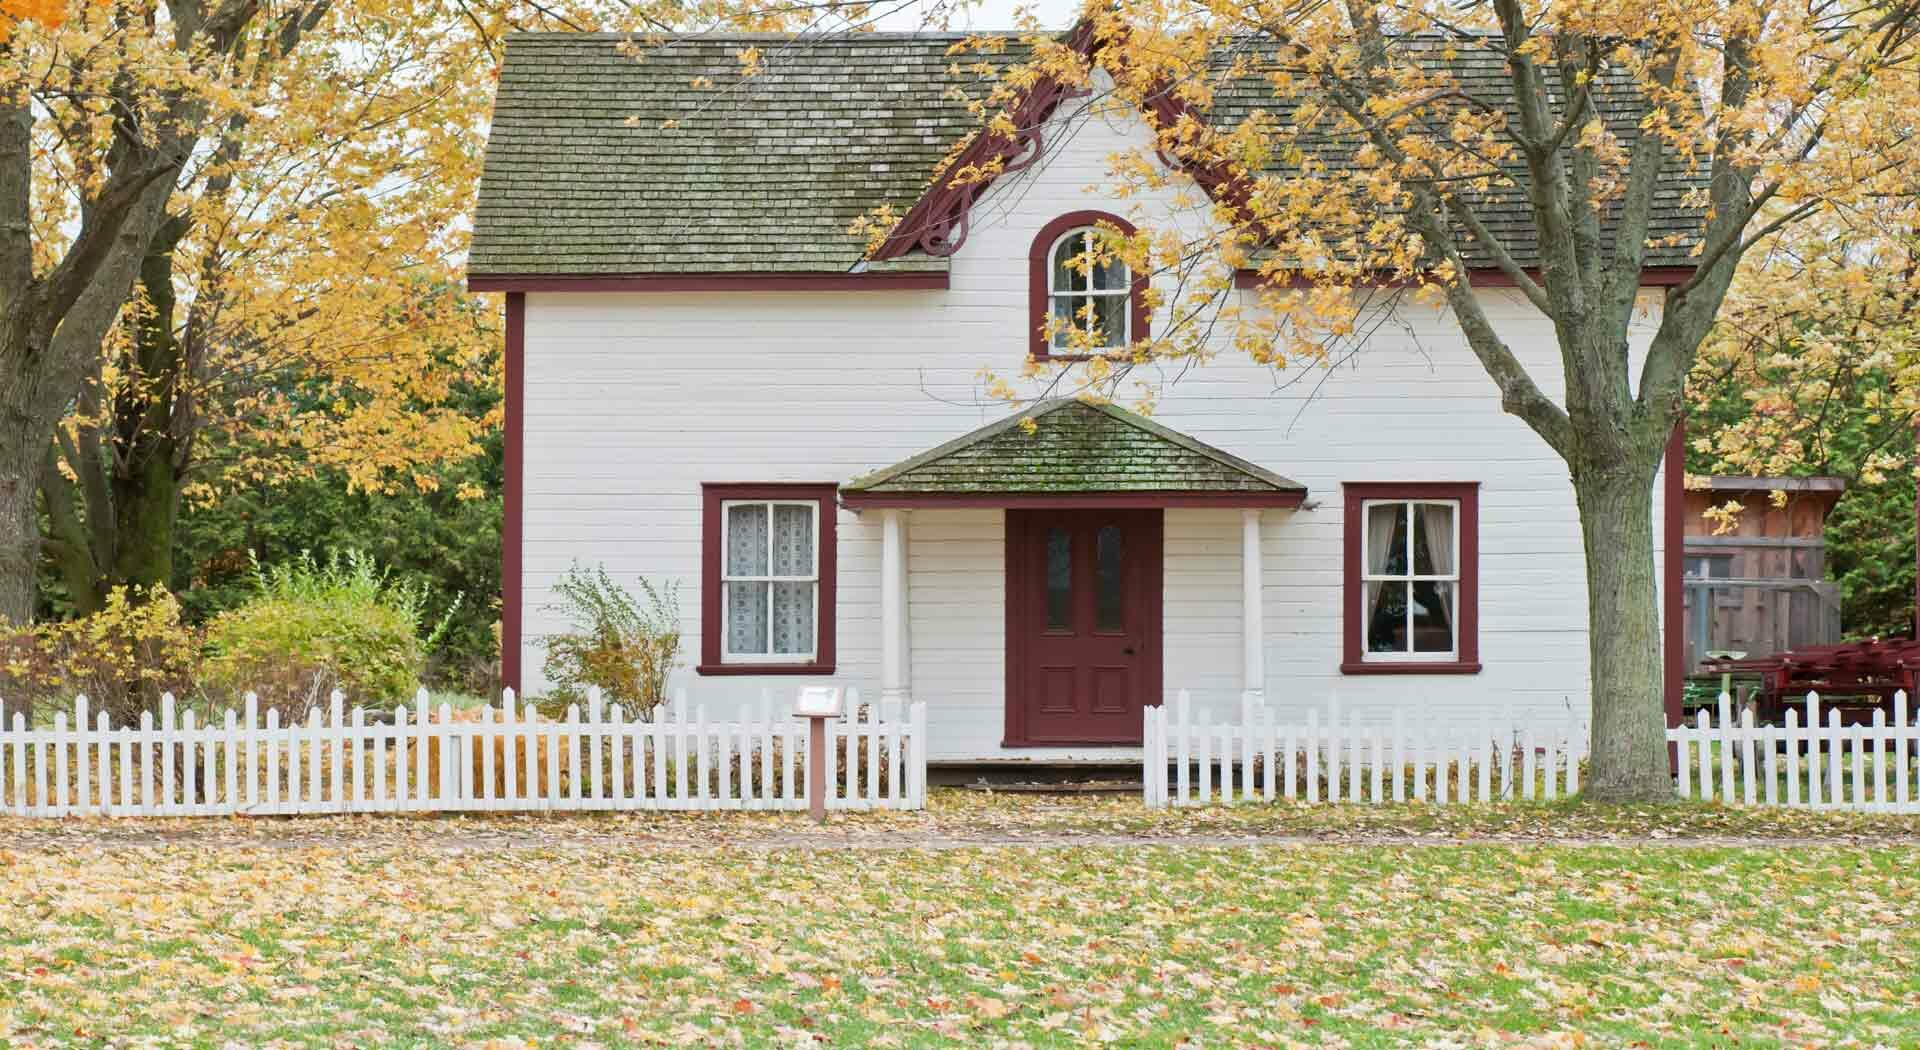 What Home Improvements Help Sell a House?